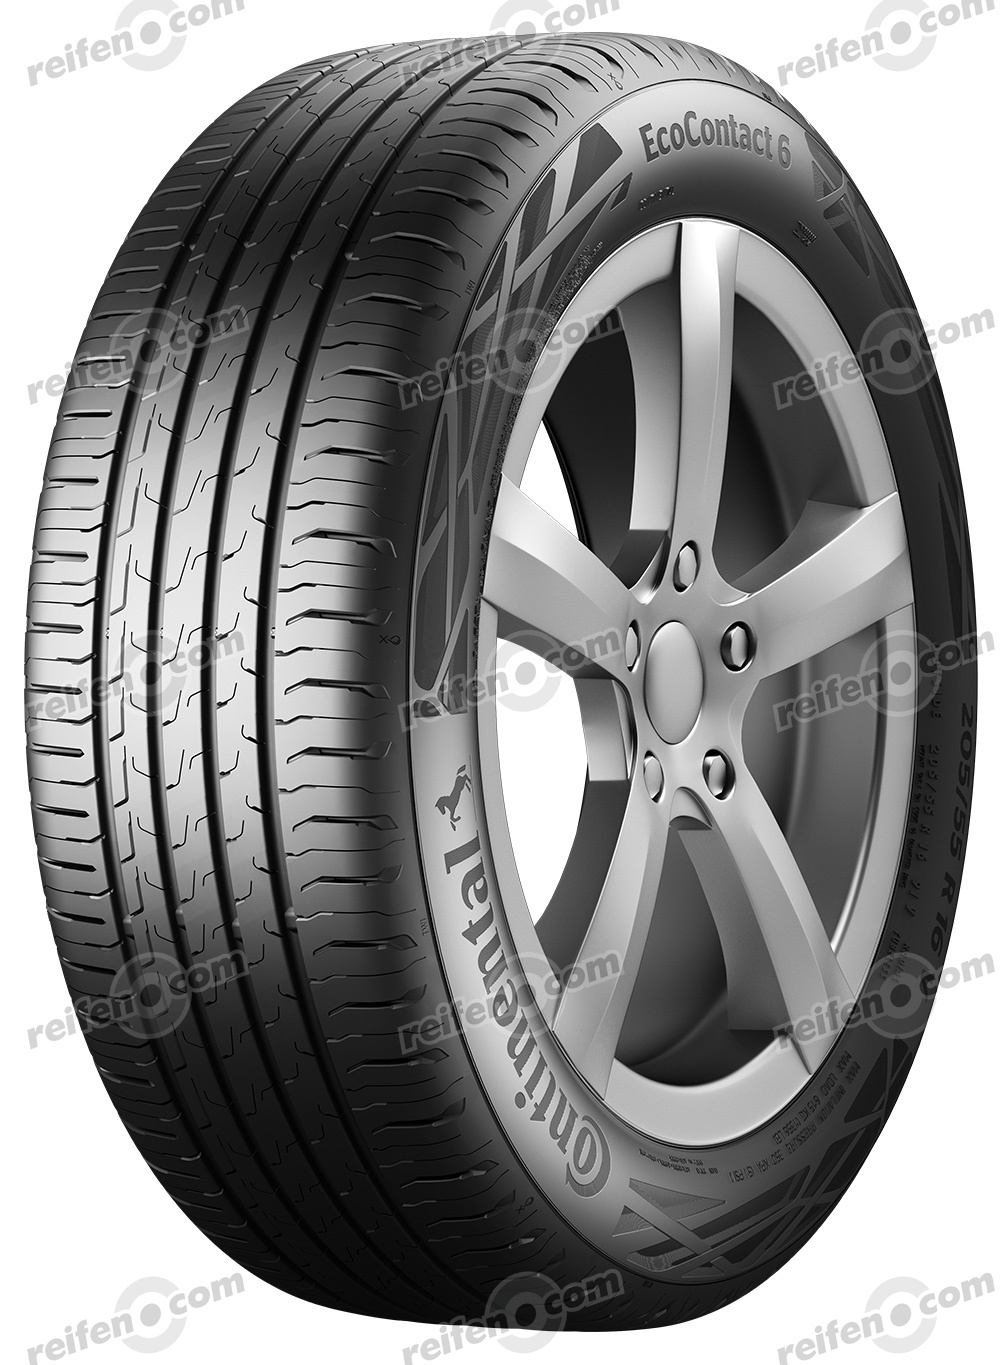 185/60 R14 82H EcoContact 6  EcoContact 6